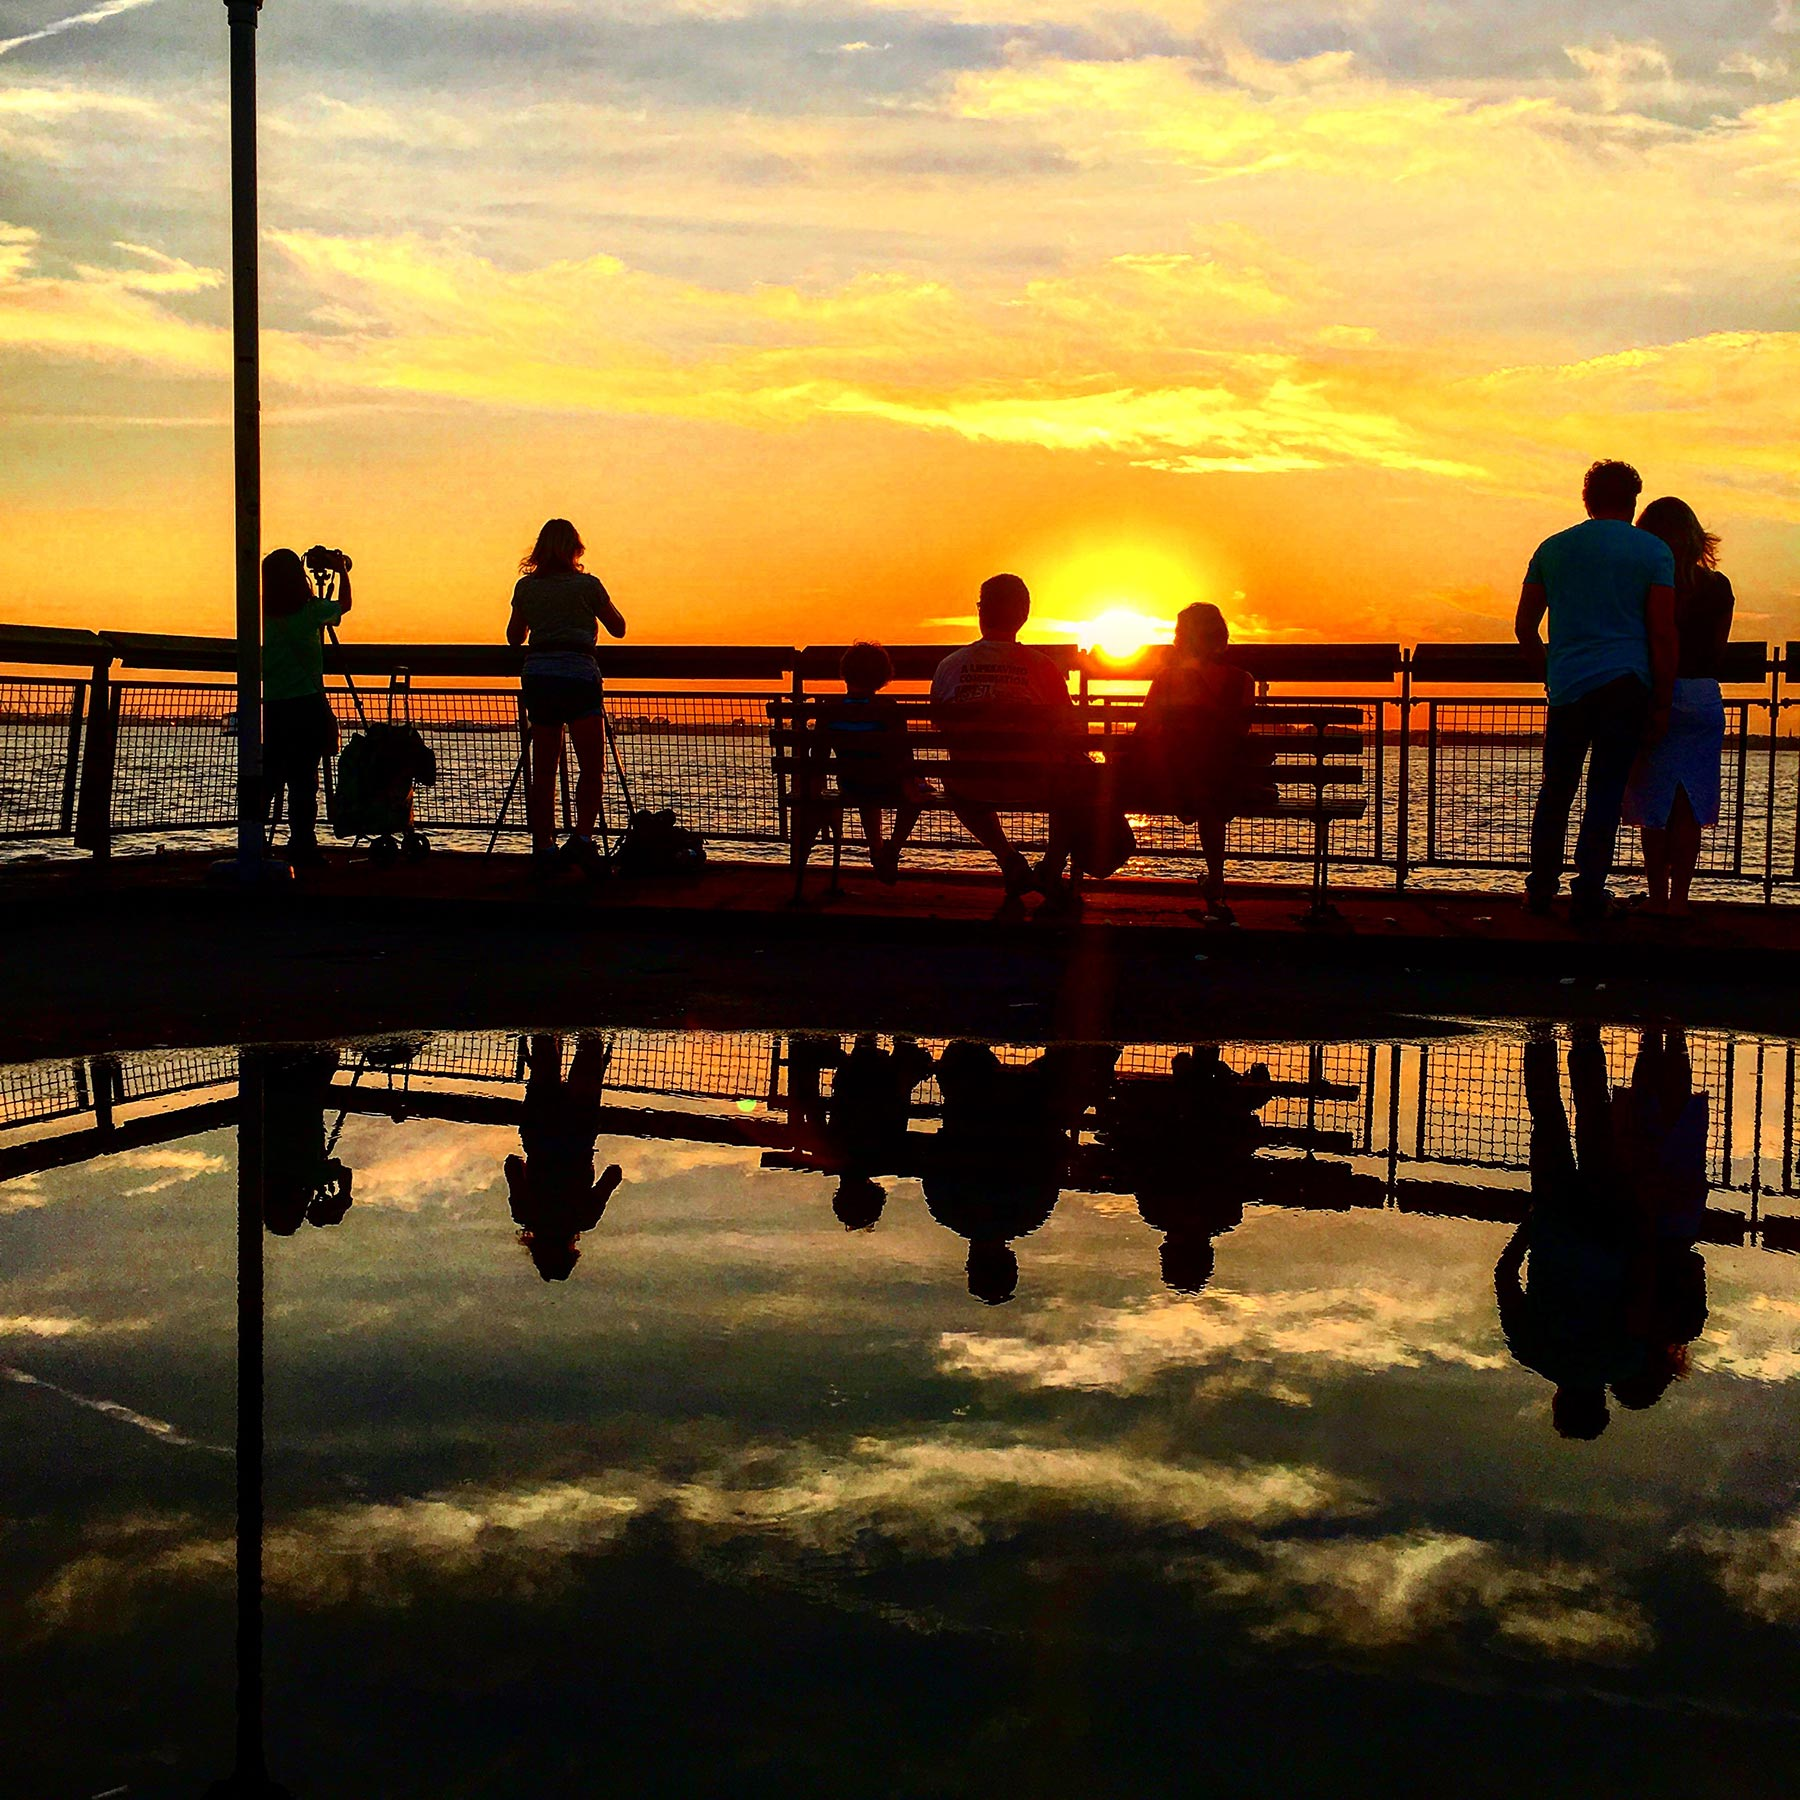 Sunset-at-Valentino-Pier-with-Reflection-of-People-watching-sunset